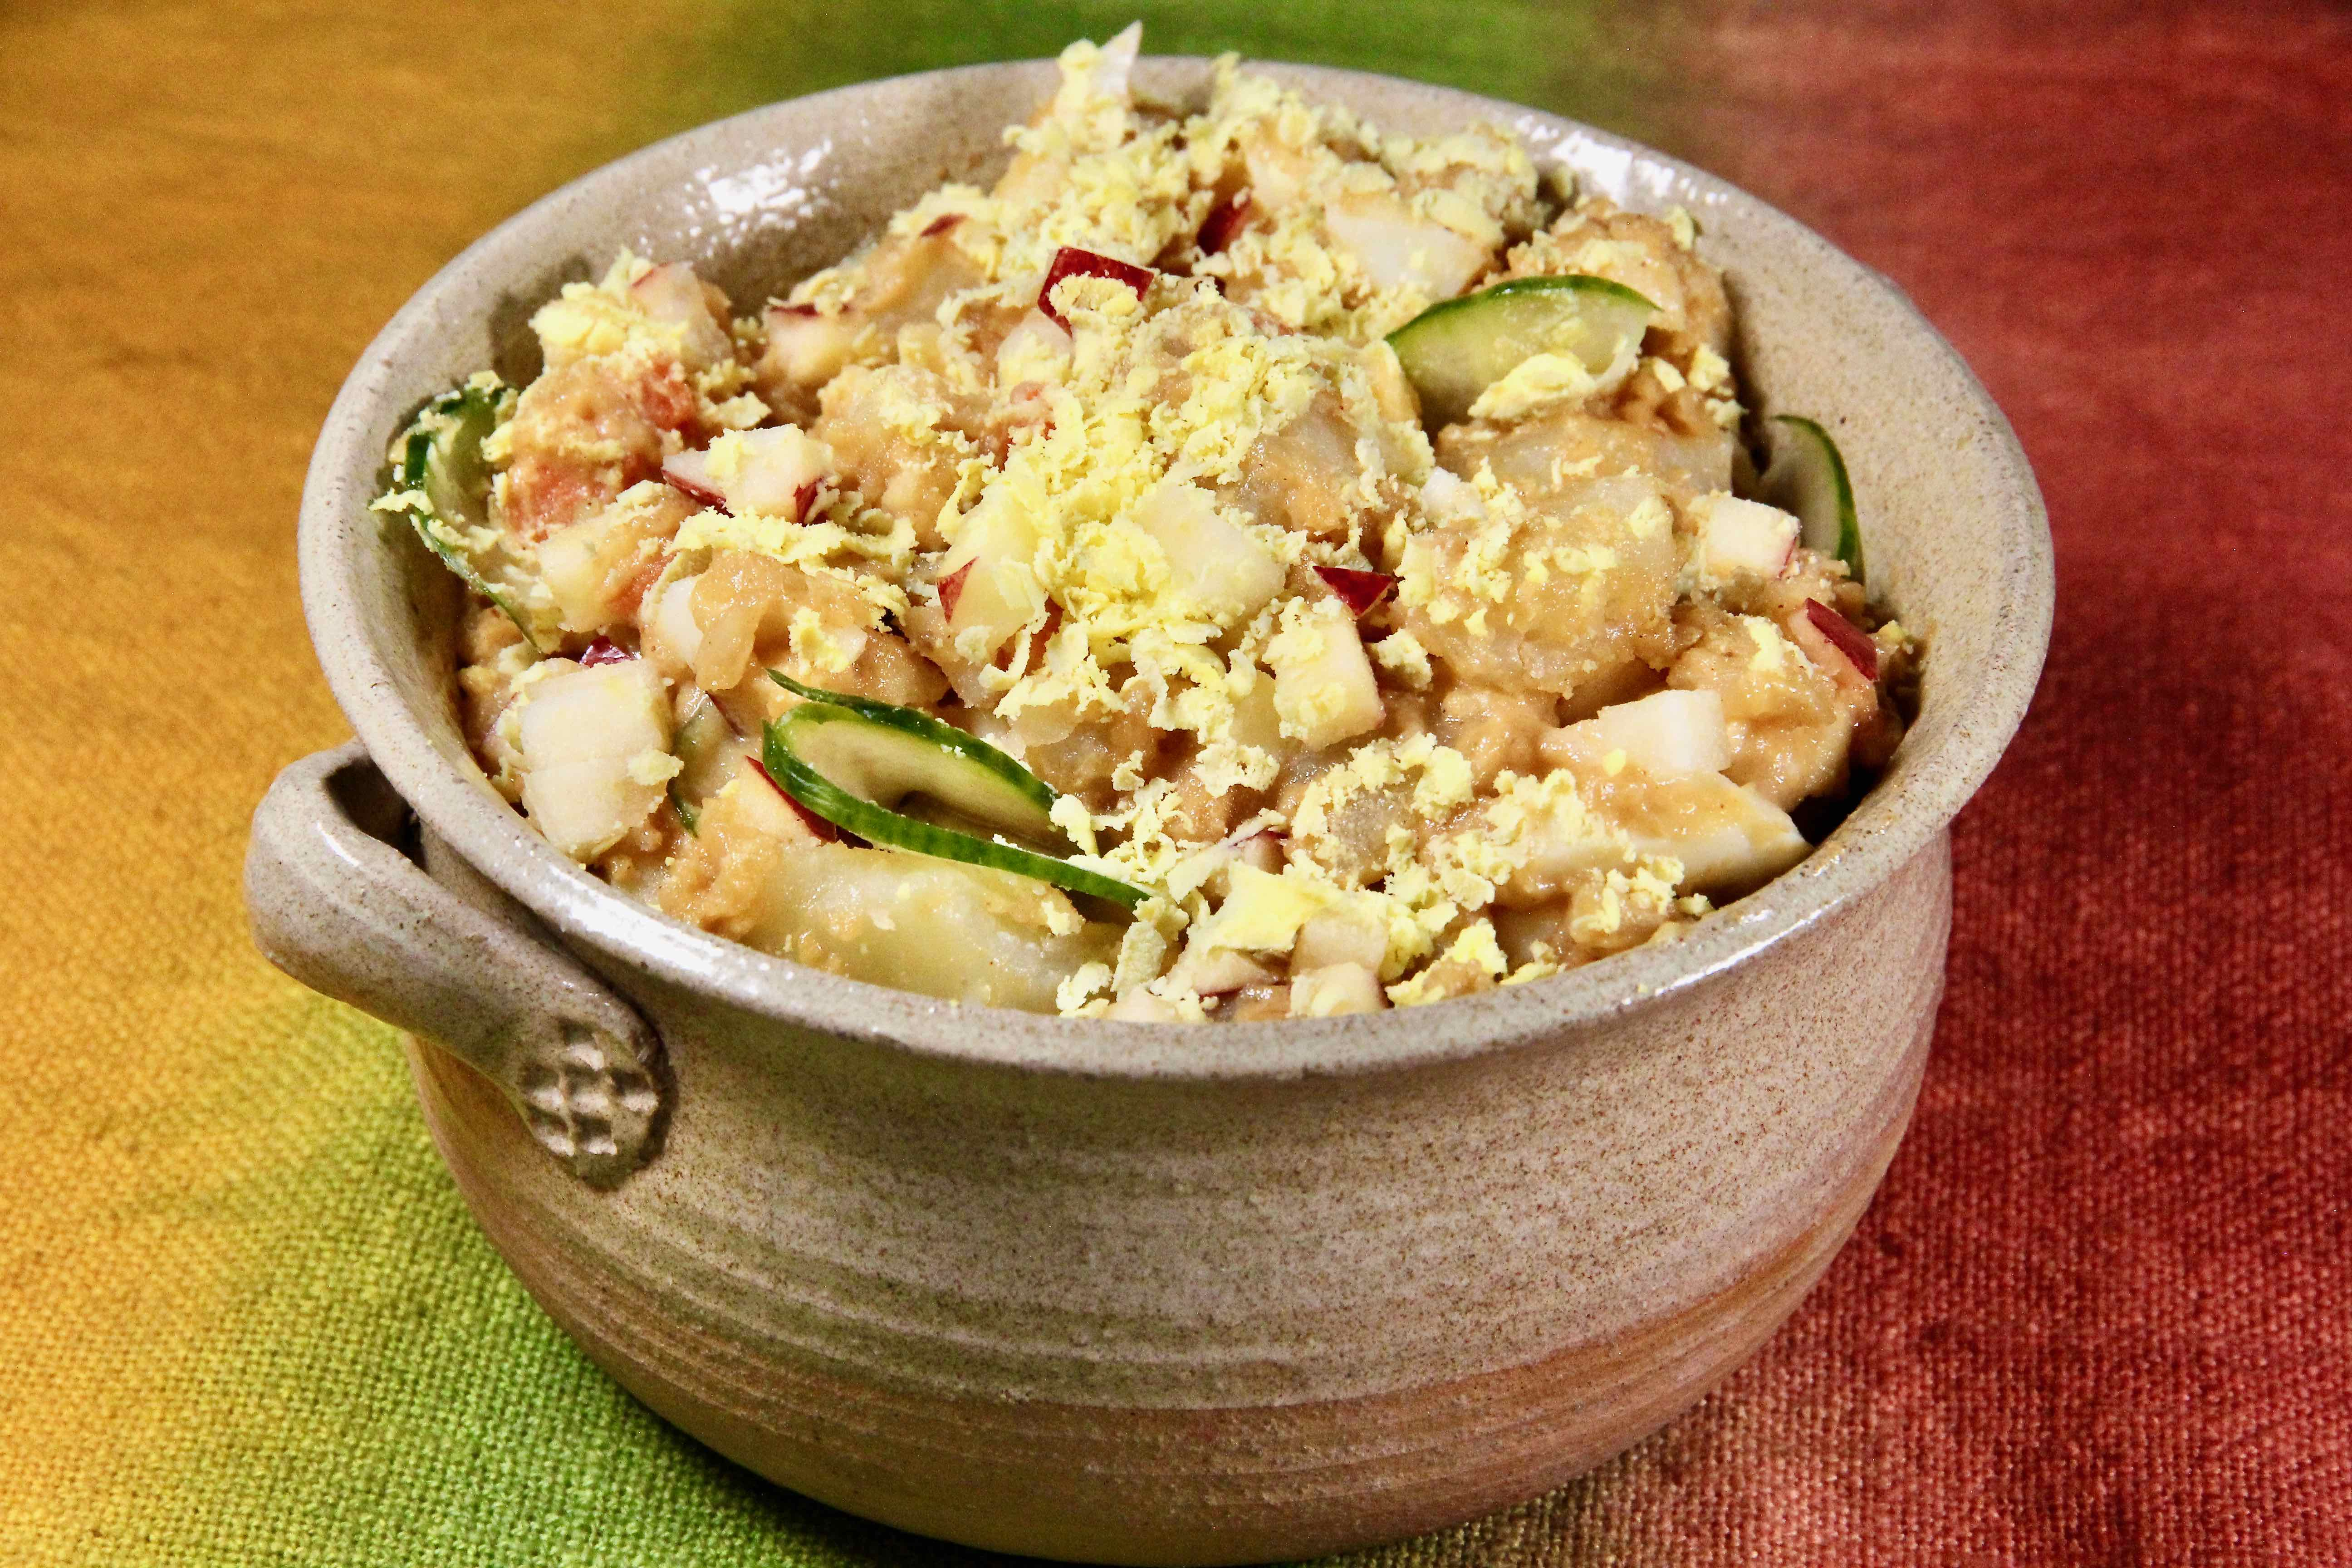 """Classic American potato salad gets a kick from Korean flavors. There's a lot going on here. """"It's creamy with a hint of sweetness, yet tangy and savory with layers of flavor and a variety of textures,"""" explains lutzflcat, the recipe submitter. """"Korean potato salad is an adaptation of America's most popular potato salad, but has its own identity when using Korean mayonnaise."""""""